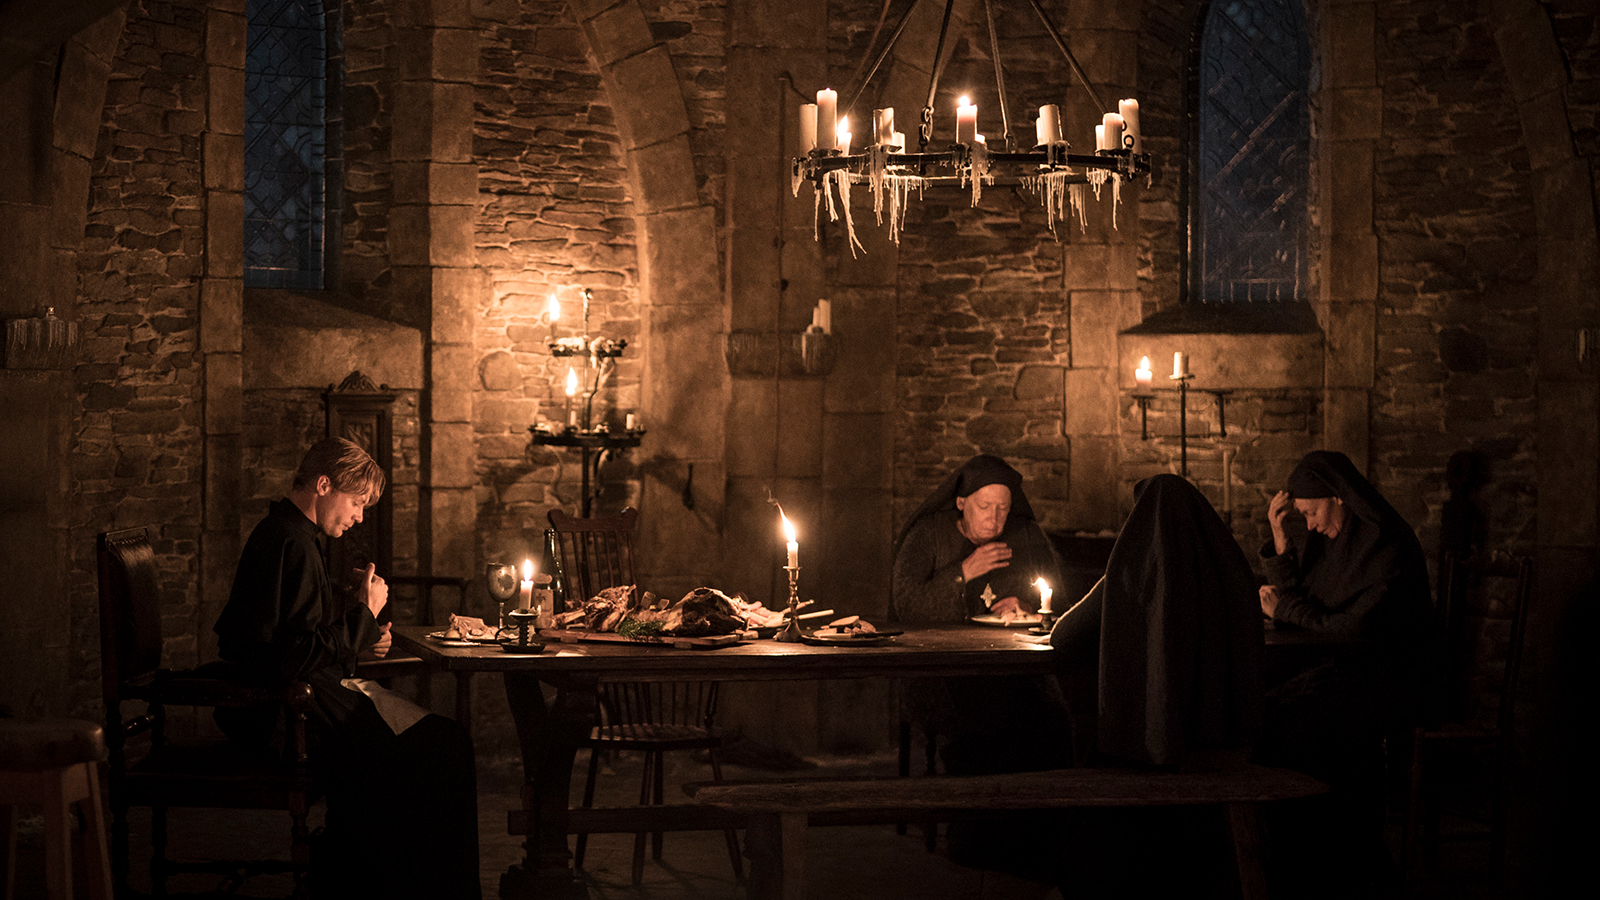 Critically Acclaimed Lambs of God, with Production Design by Chris Kennedy